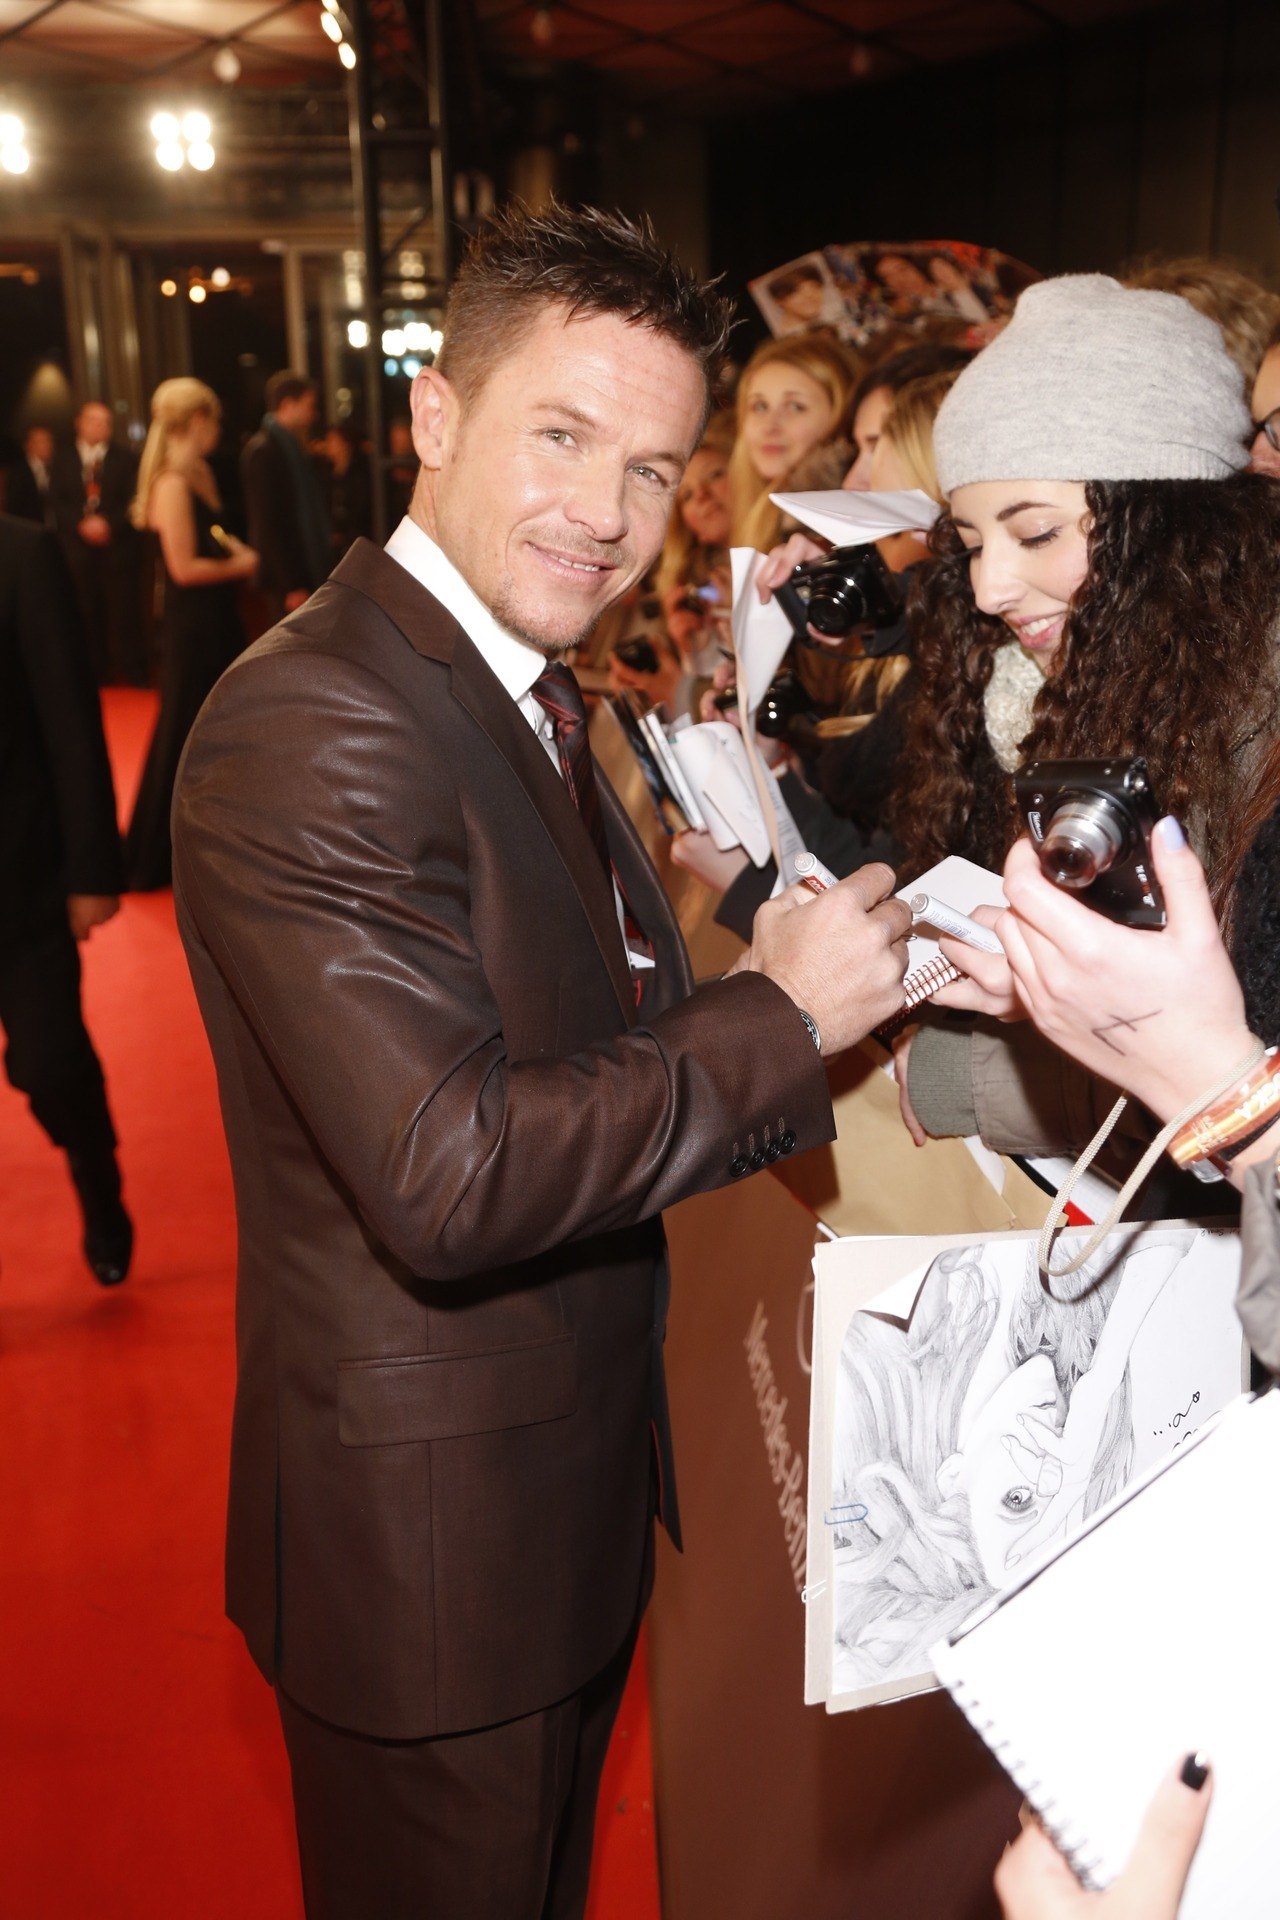 Felix Baumgartner on the red carpet for the BAMBI Awards // photo credit: Hubert Burda Media